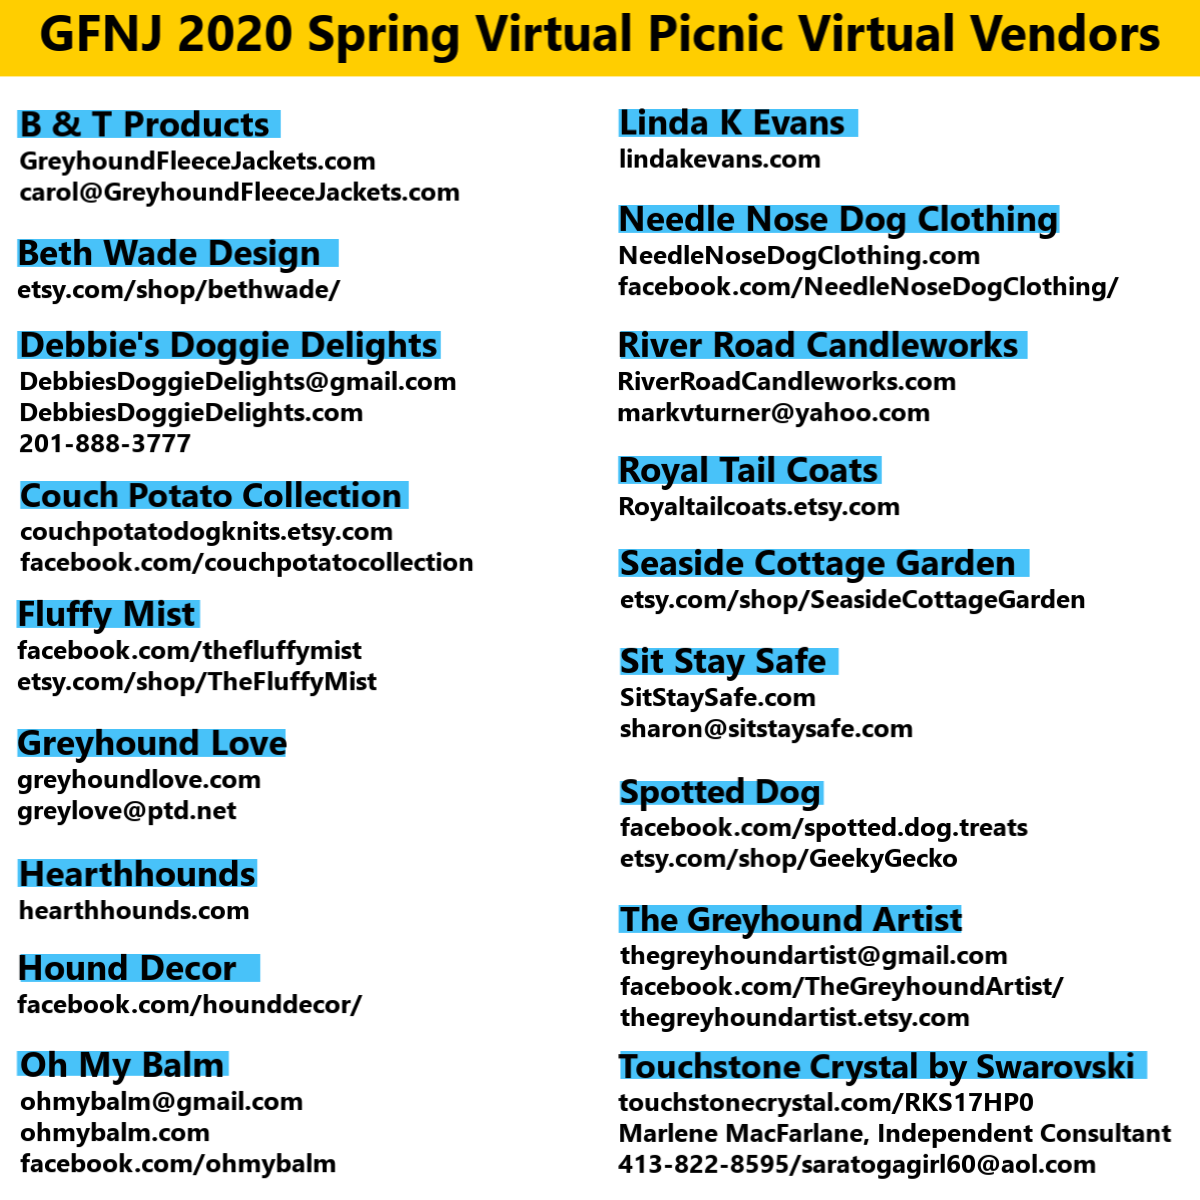 2020 Virtual Picnic Vendors